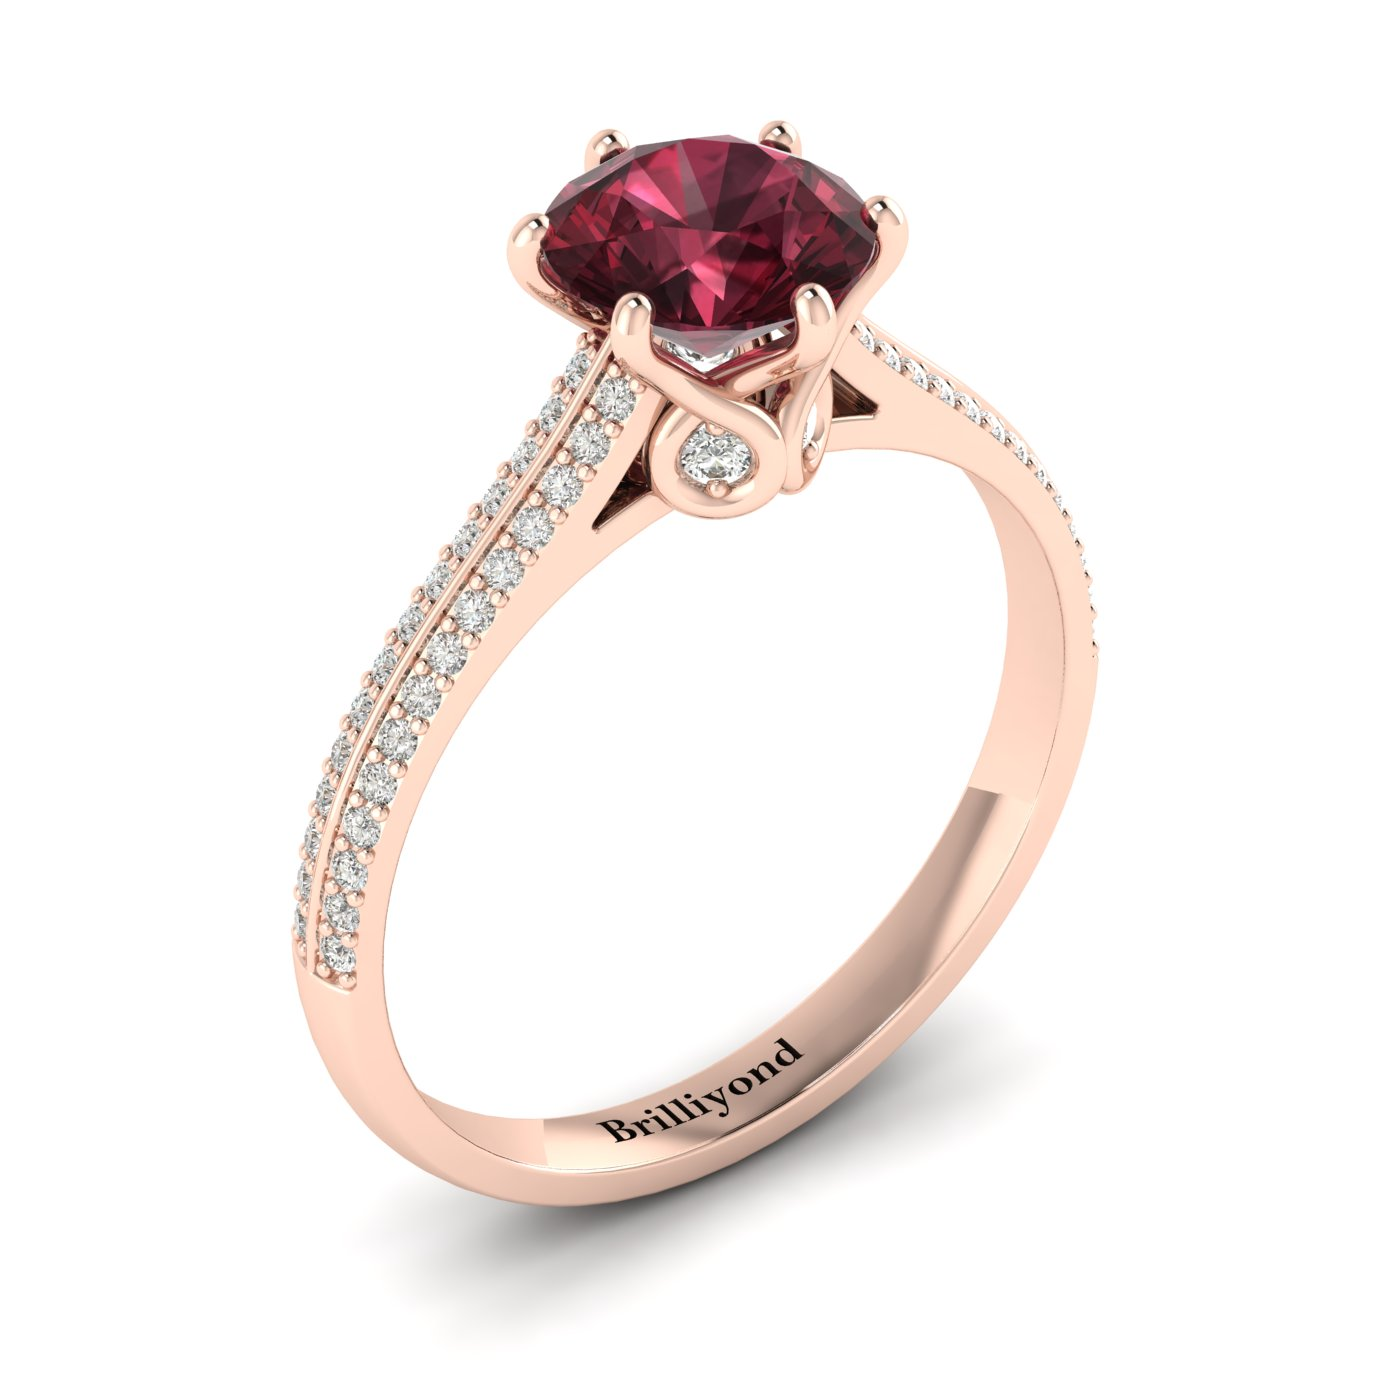 6.5mm Garnet on 6 Prongs with CZ Accents